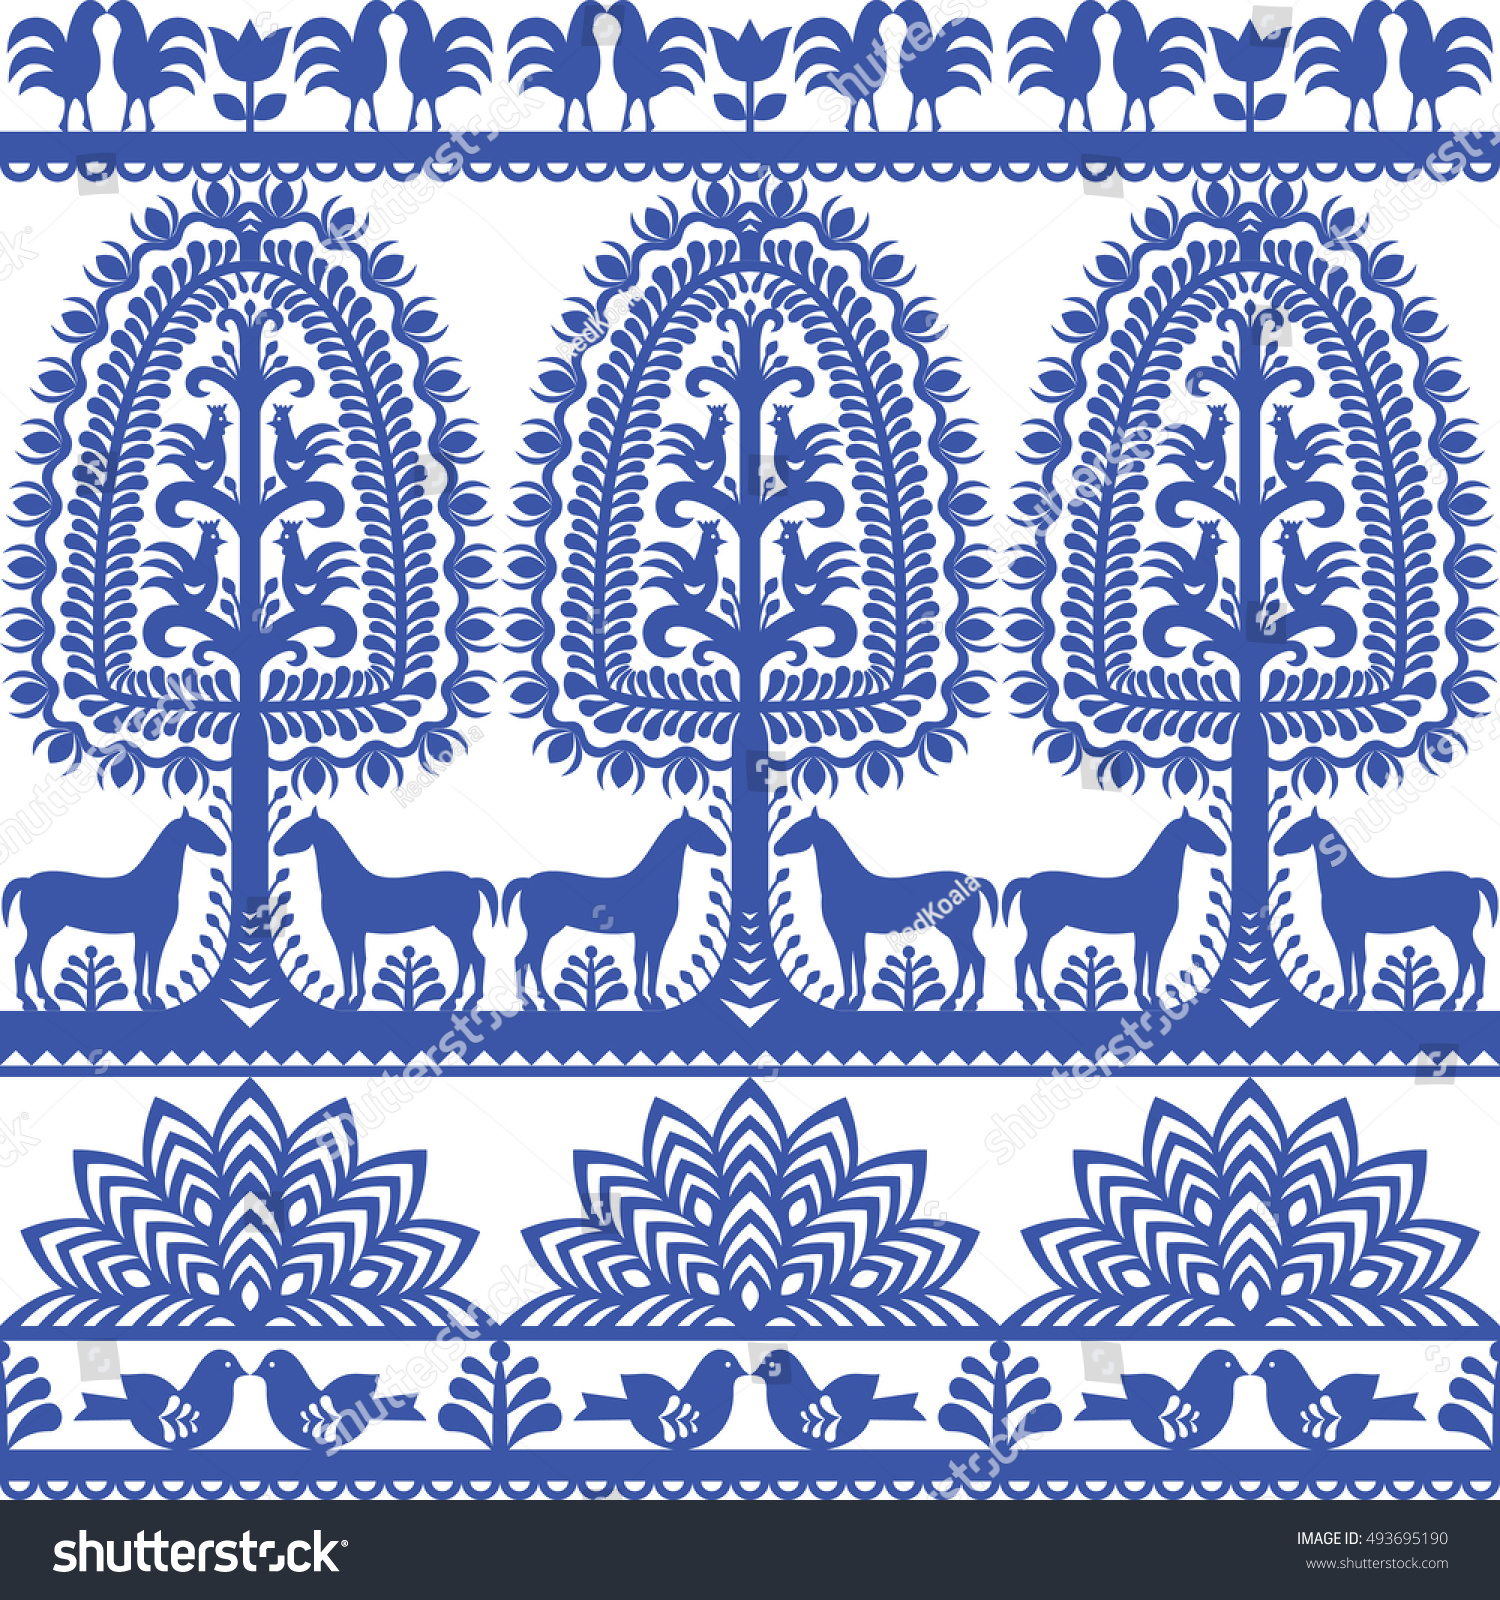 Seamless Floral Polish Folk Art Pattern Stock Vector Royalty Free